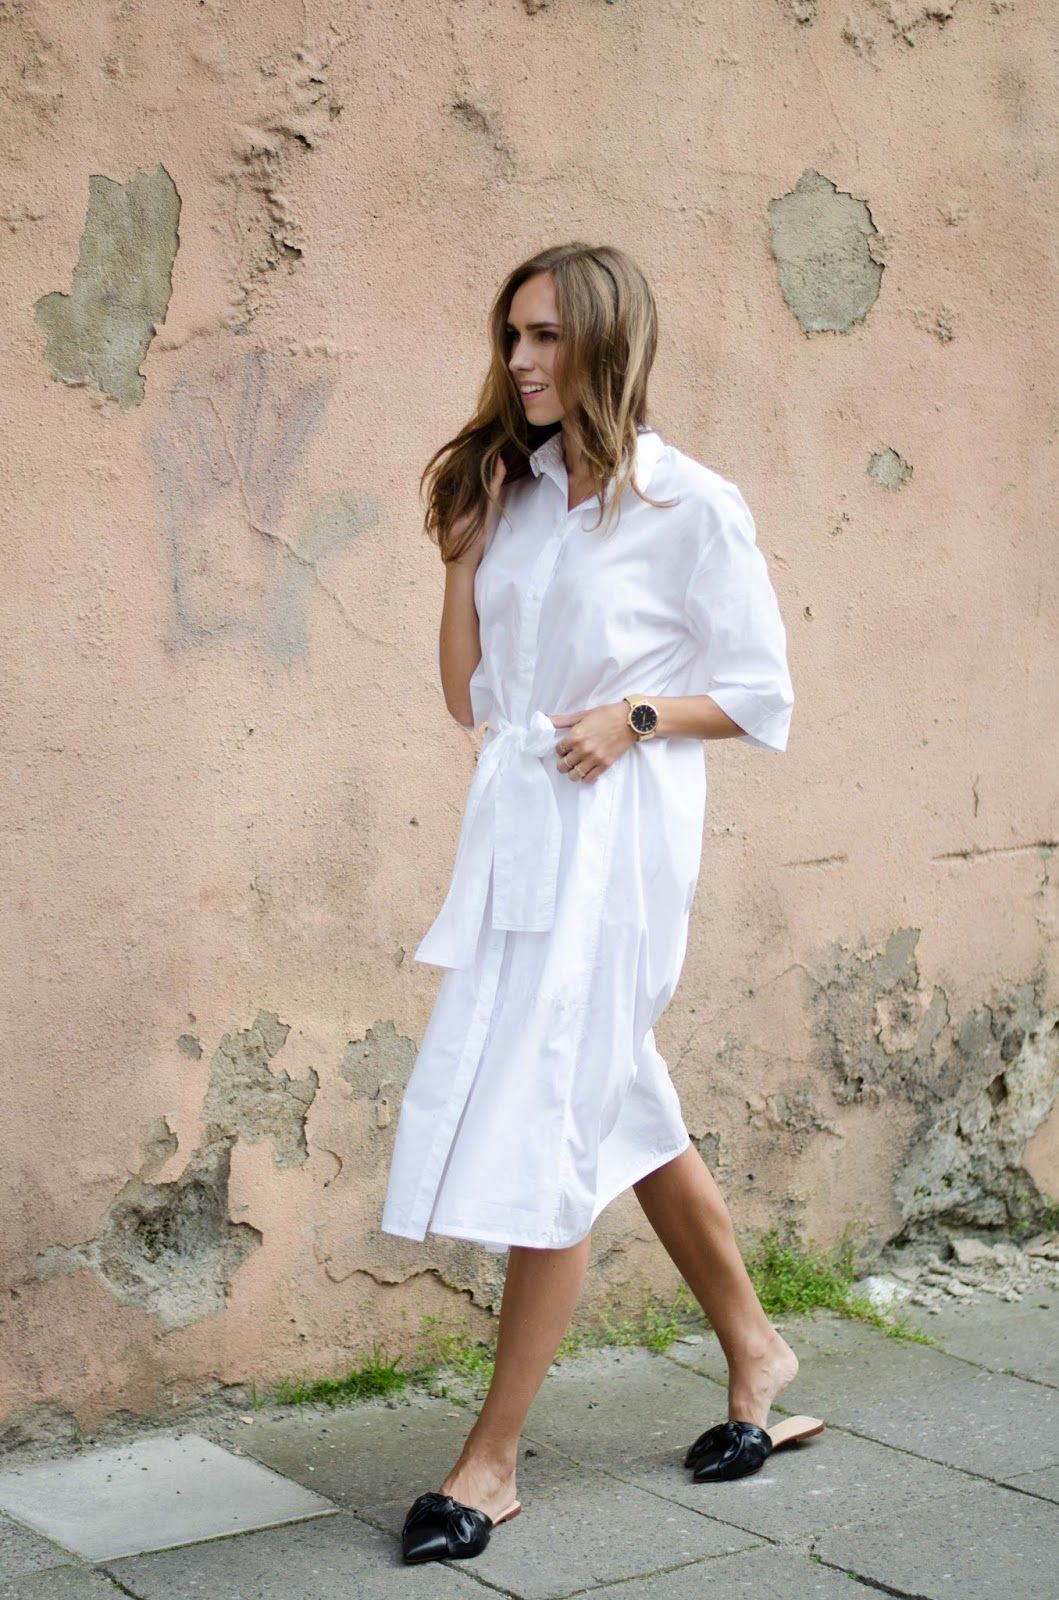 1061bfe41 Flat mules shirt dress minimalist summer outfit | My Style & Outfits ...